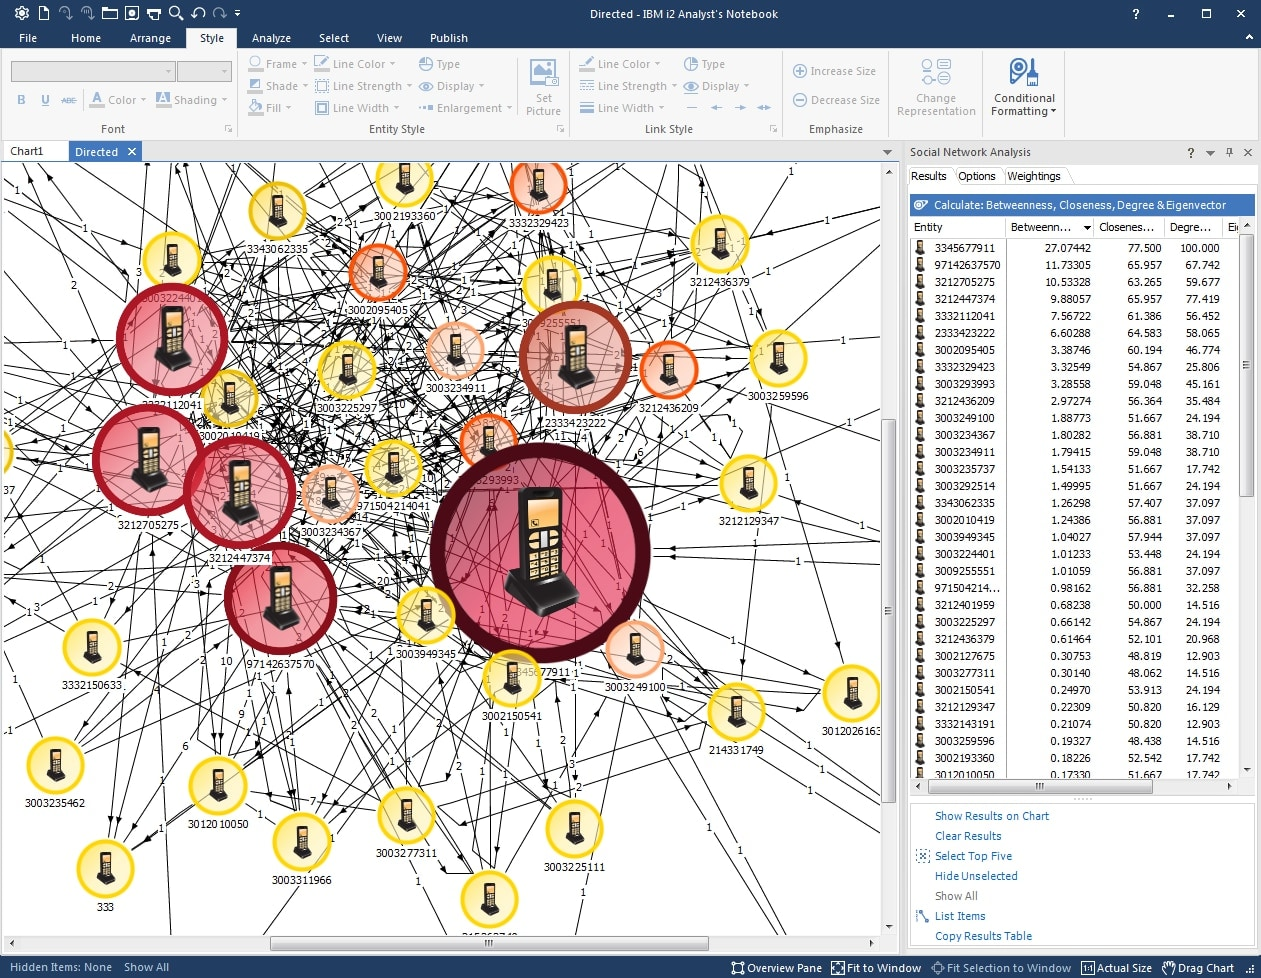 Social network analysis available in IBM i2 Analyst's Notebook